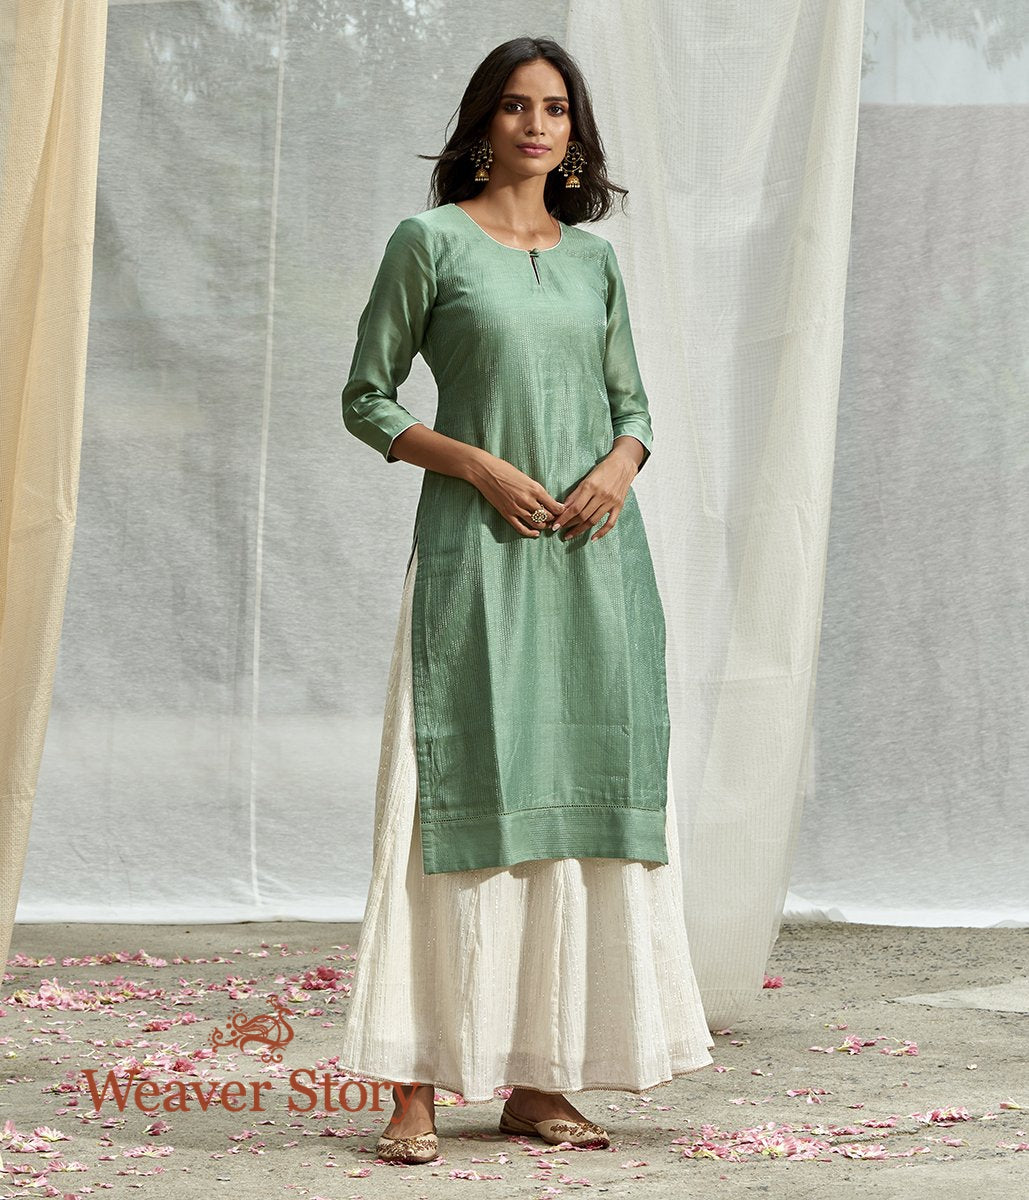 Handwoven Sage Green Chanderi Cotton Silk with Tagai Work Tunic with White Skirt and Dupatta